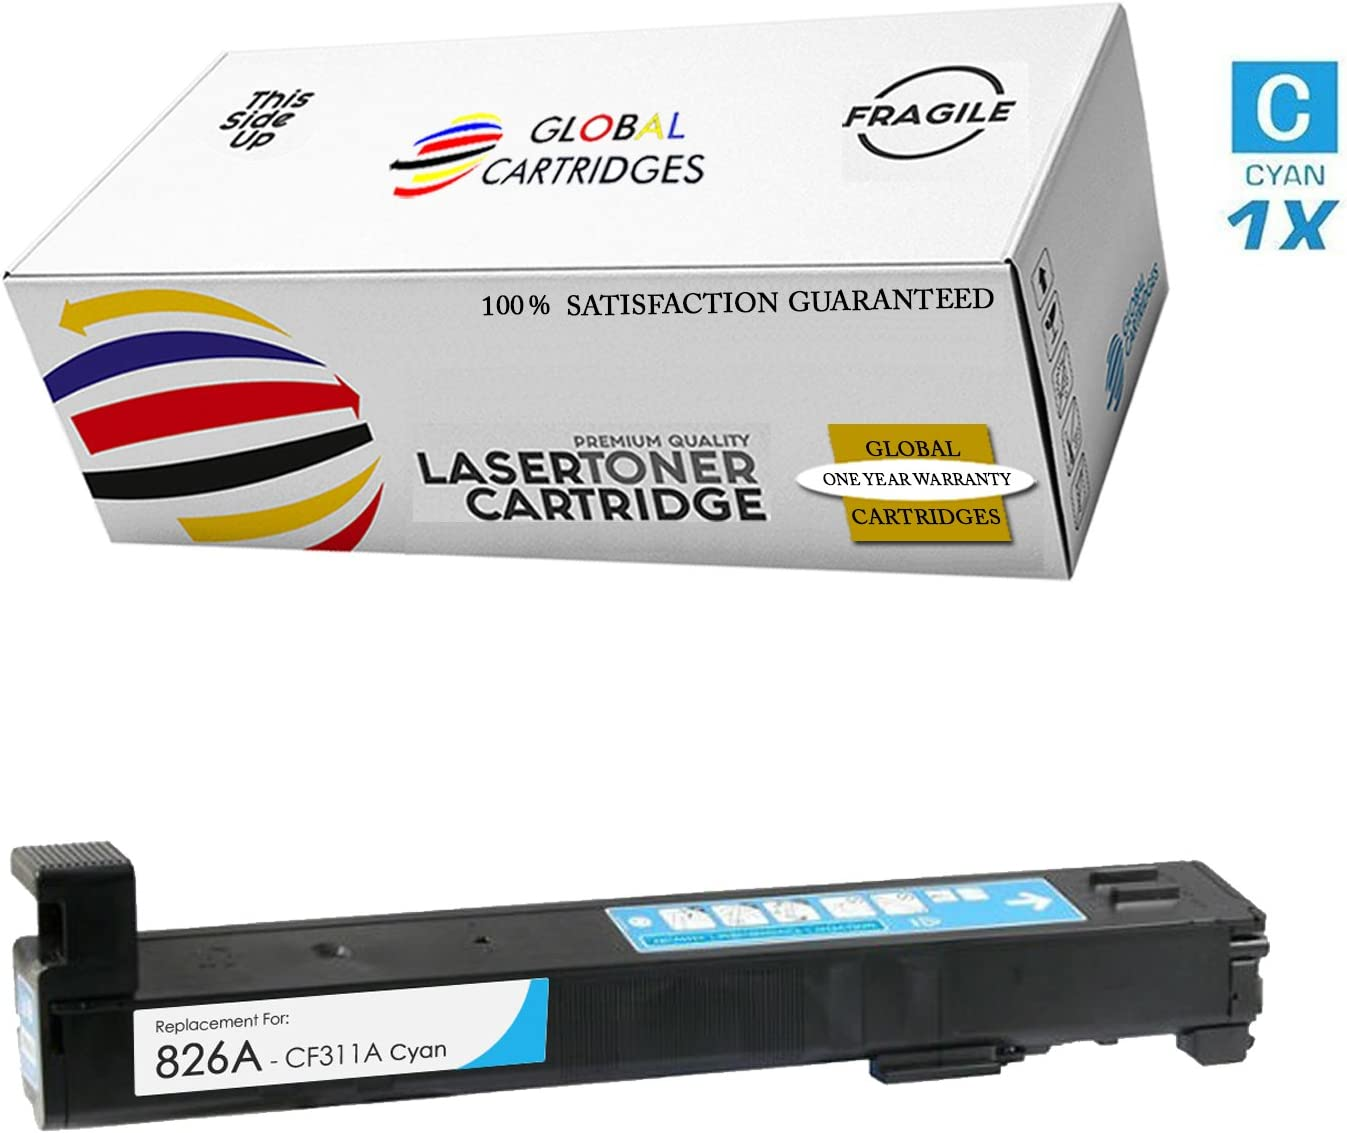 Black, Cyan, Yellow, Magenta GLB Premium Quality Remanufactured Replacement for HP 826A Toner Cartridge Set CF310A CF311A CF312A CF313A